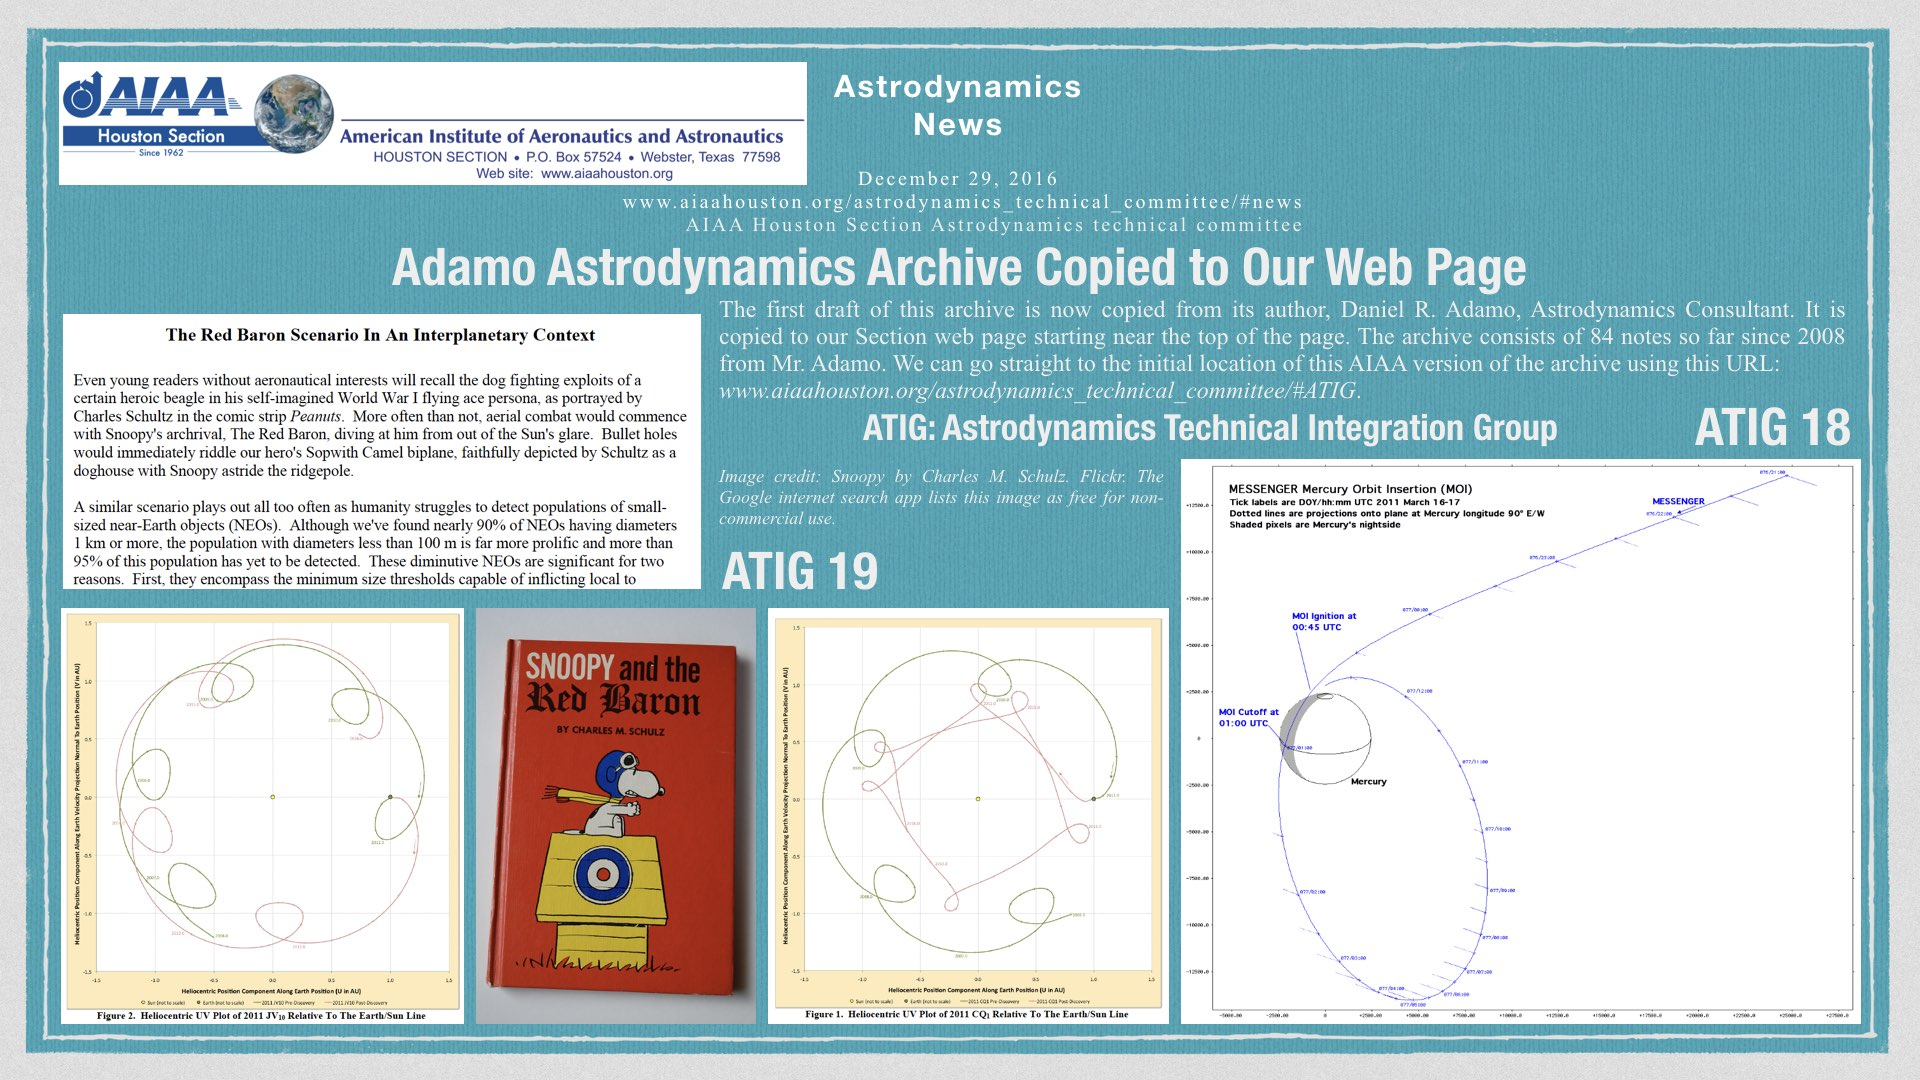 Above: Adamo Astrodynamics Archive Copied to Our Web Page. (Click to zoom.)